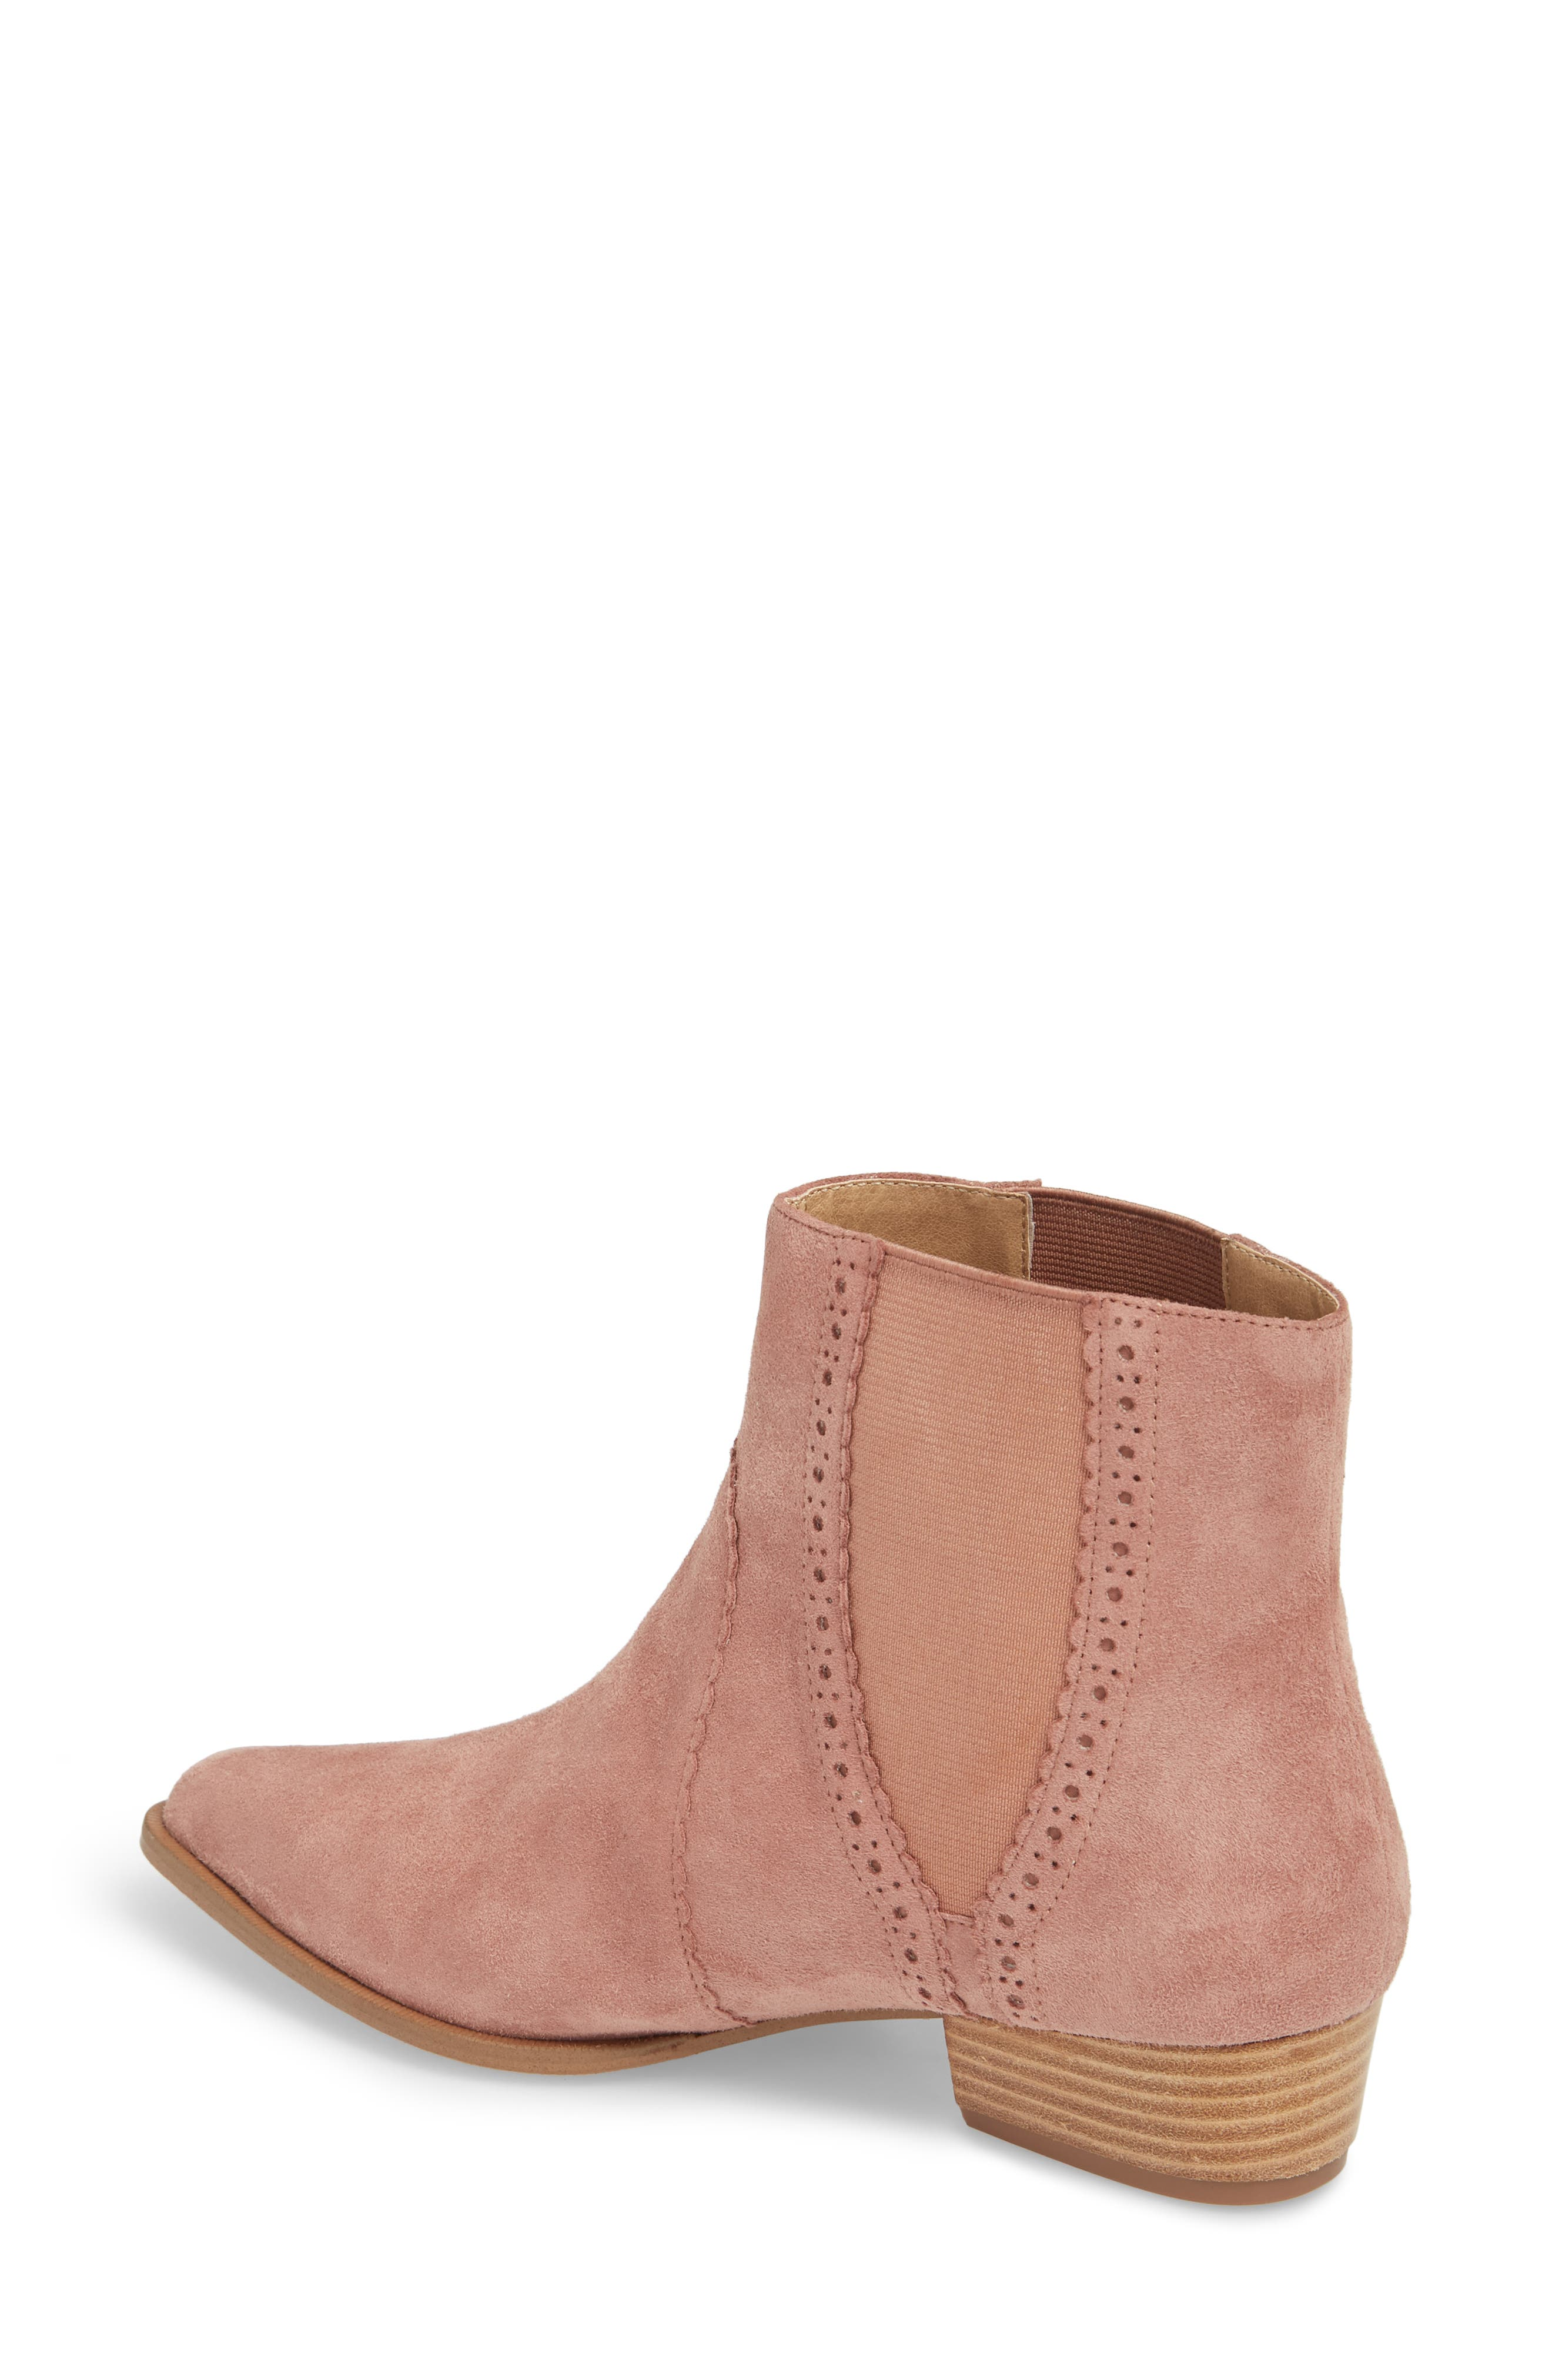 Mica Chelsea Bootie,                             Alternate thumbnail 2, color,                             ROSE SUEDE